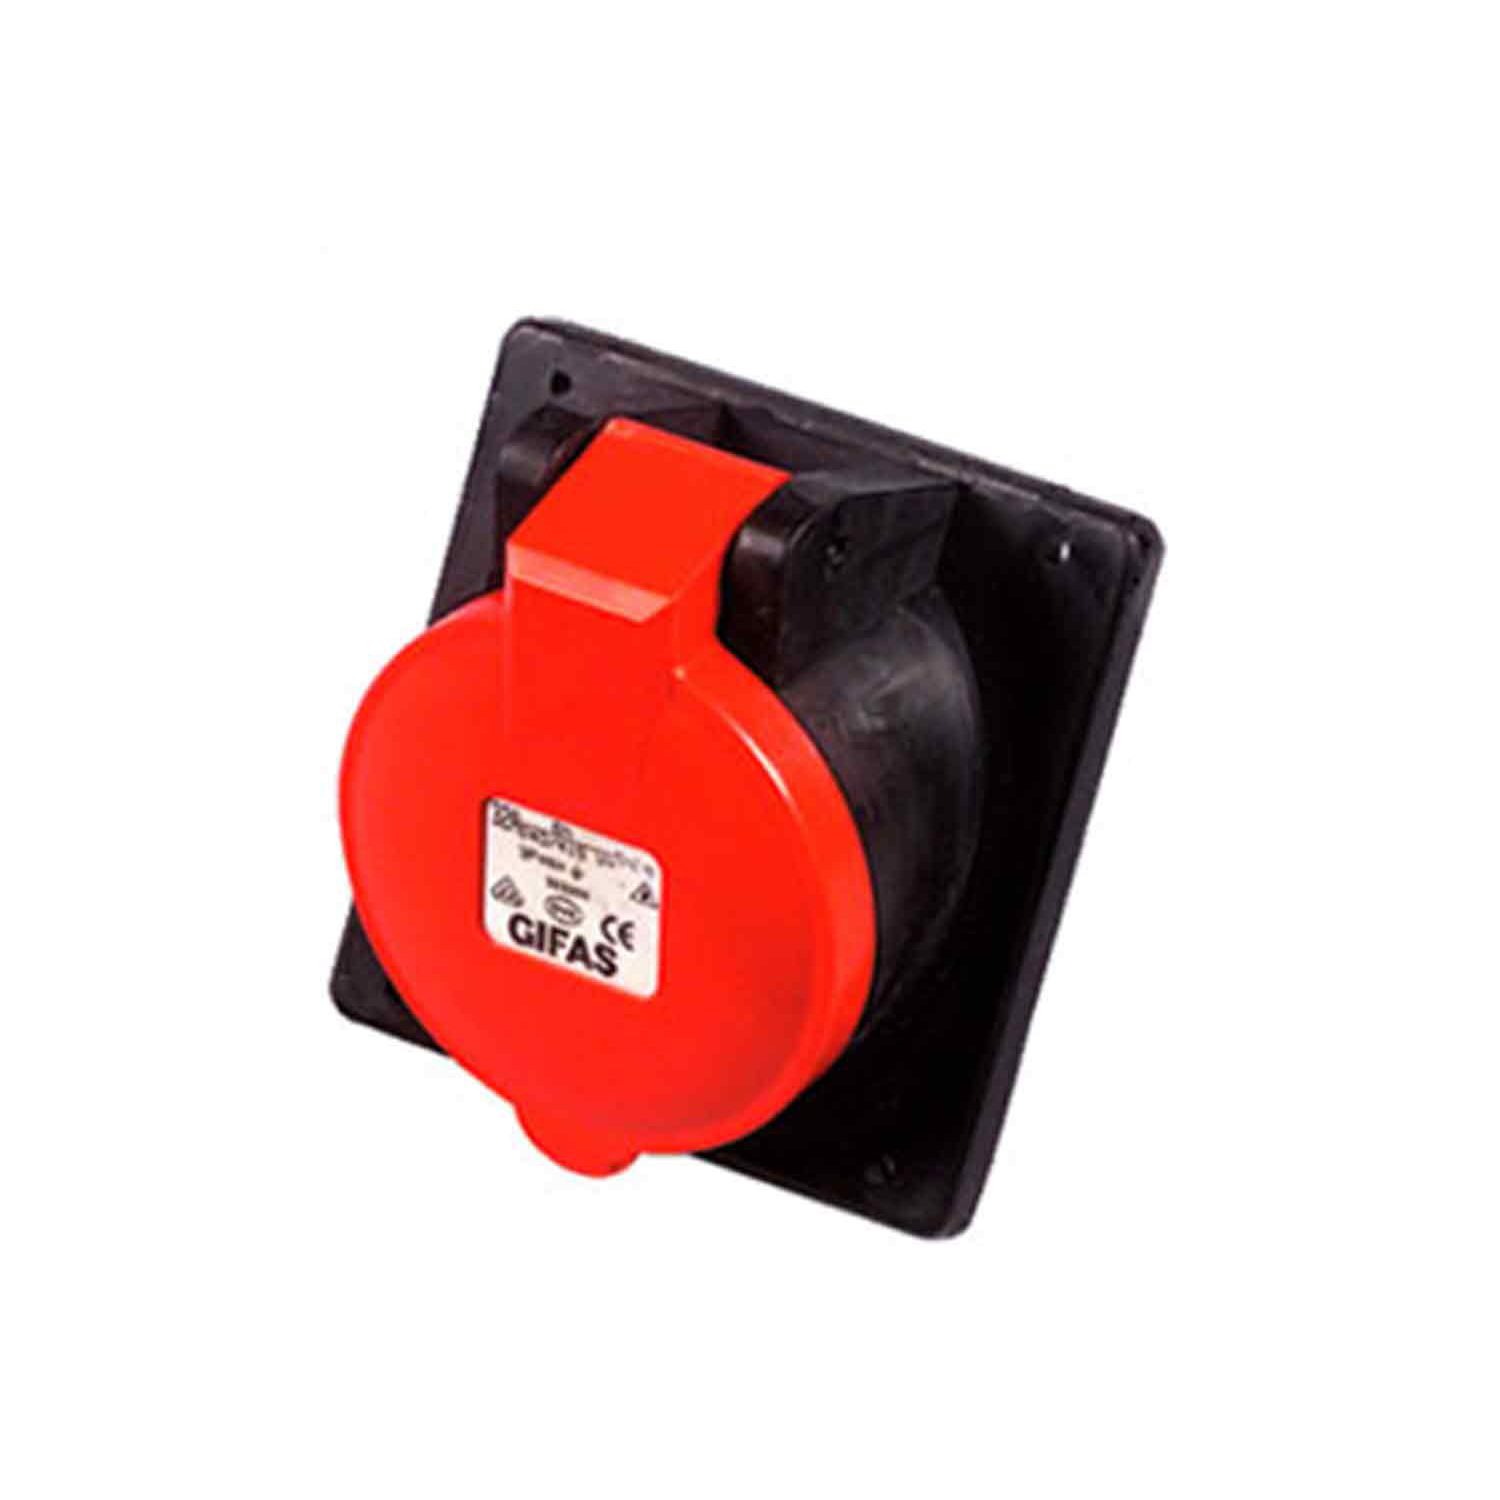 GIFAS Solid Rubber CEE Built-in Socket 16A 400V 5-pole (101993)